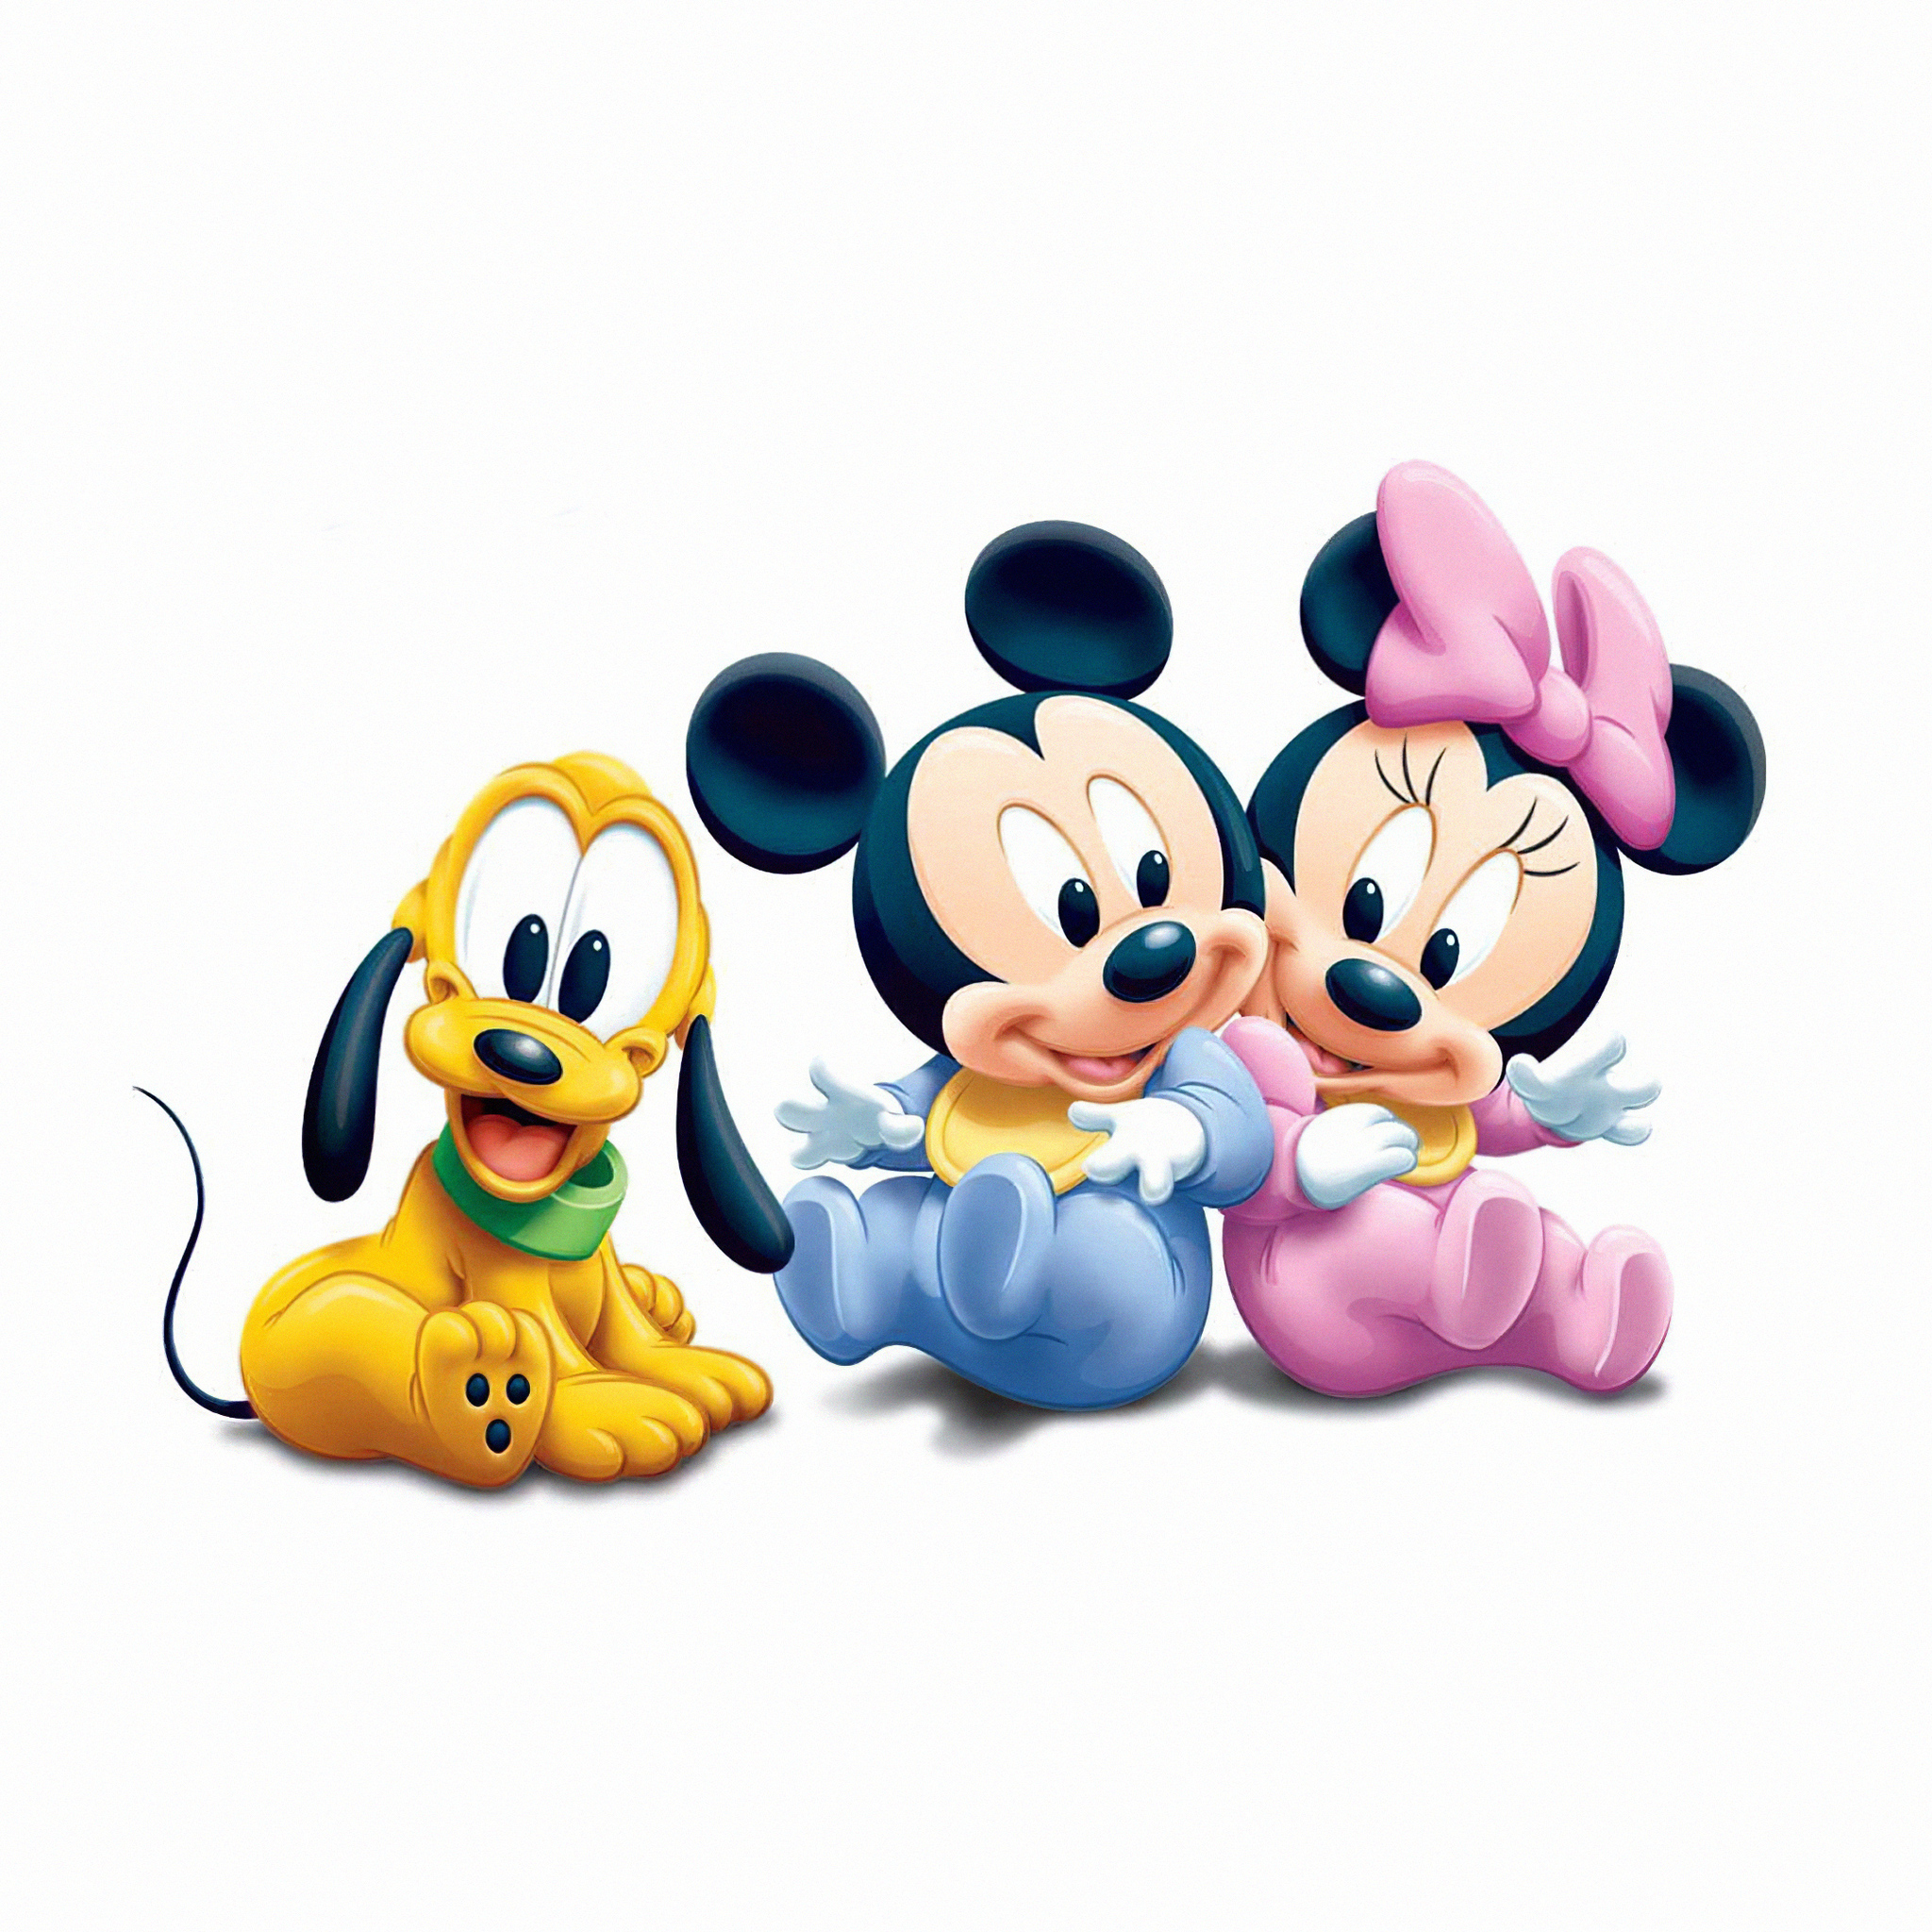 2048x2048 Mickey Mouse And Goofy Ipad Air Hd 4k Wallpapers Images Backgrounds Photos And Pictures